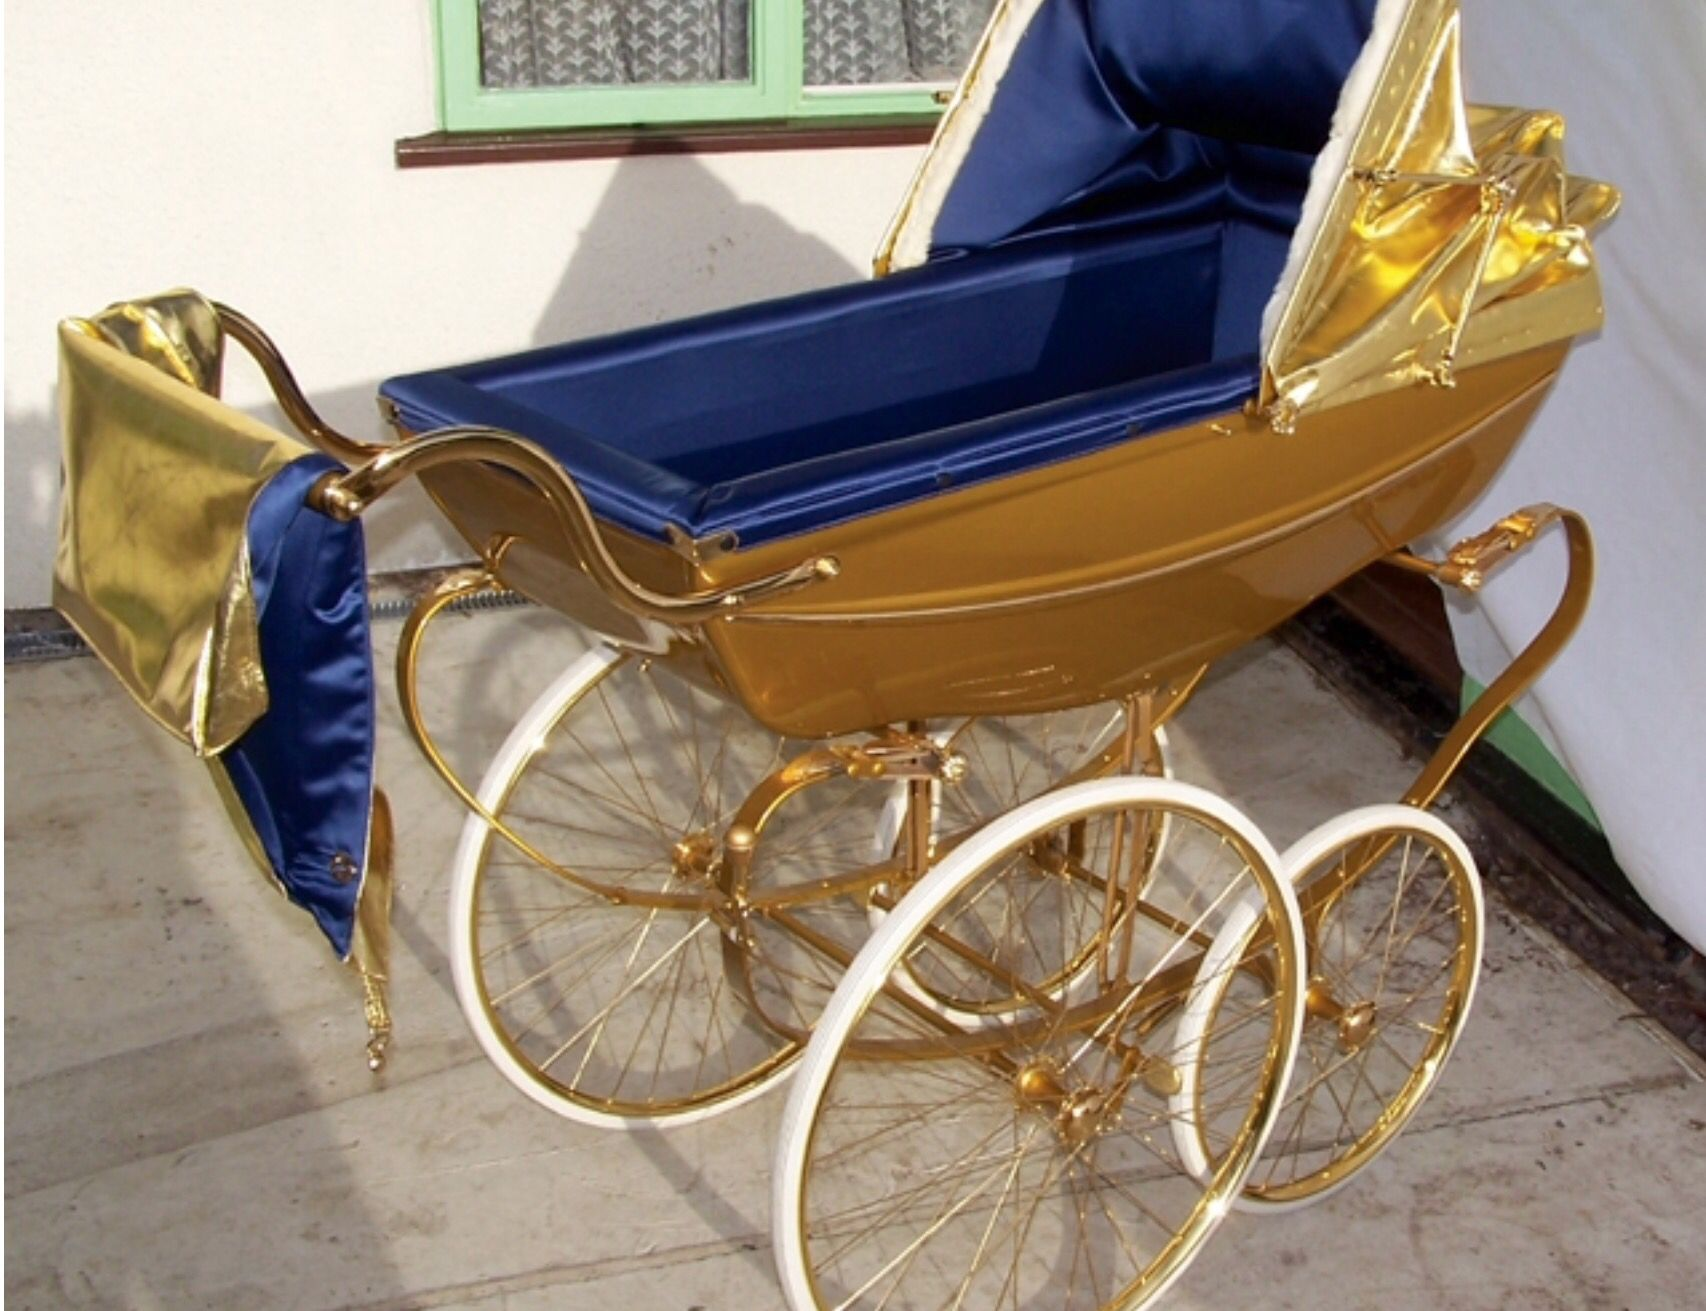 Royal blue and gold Coach built pram Expensive baby gifts